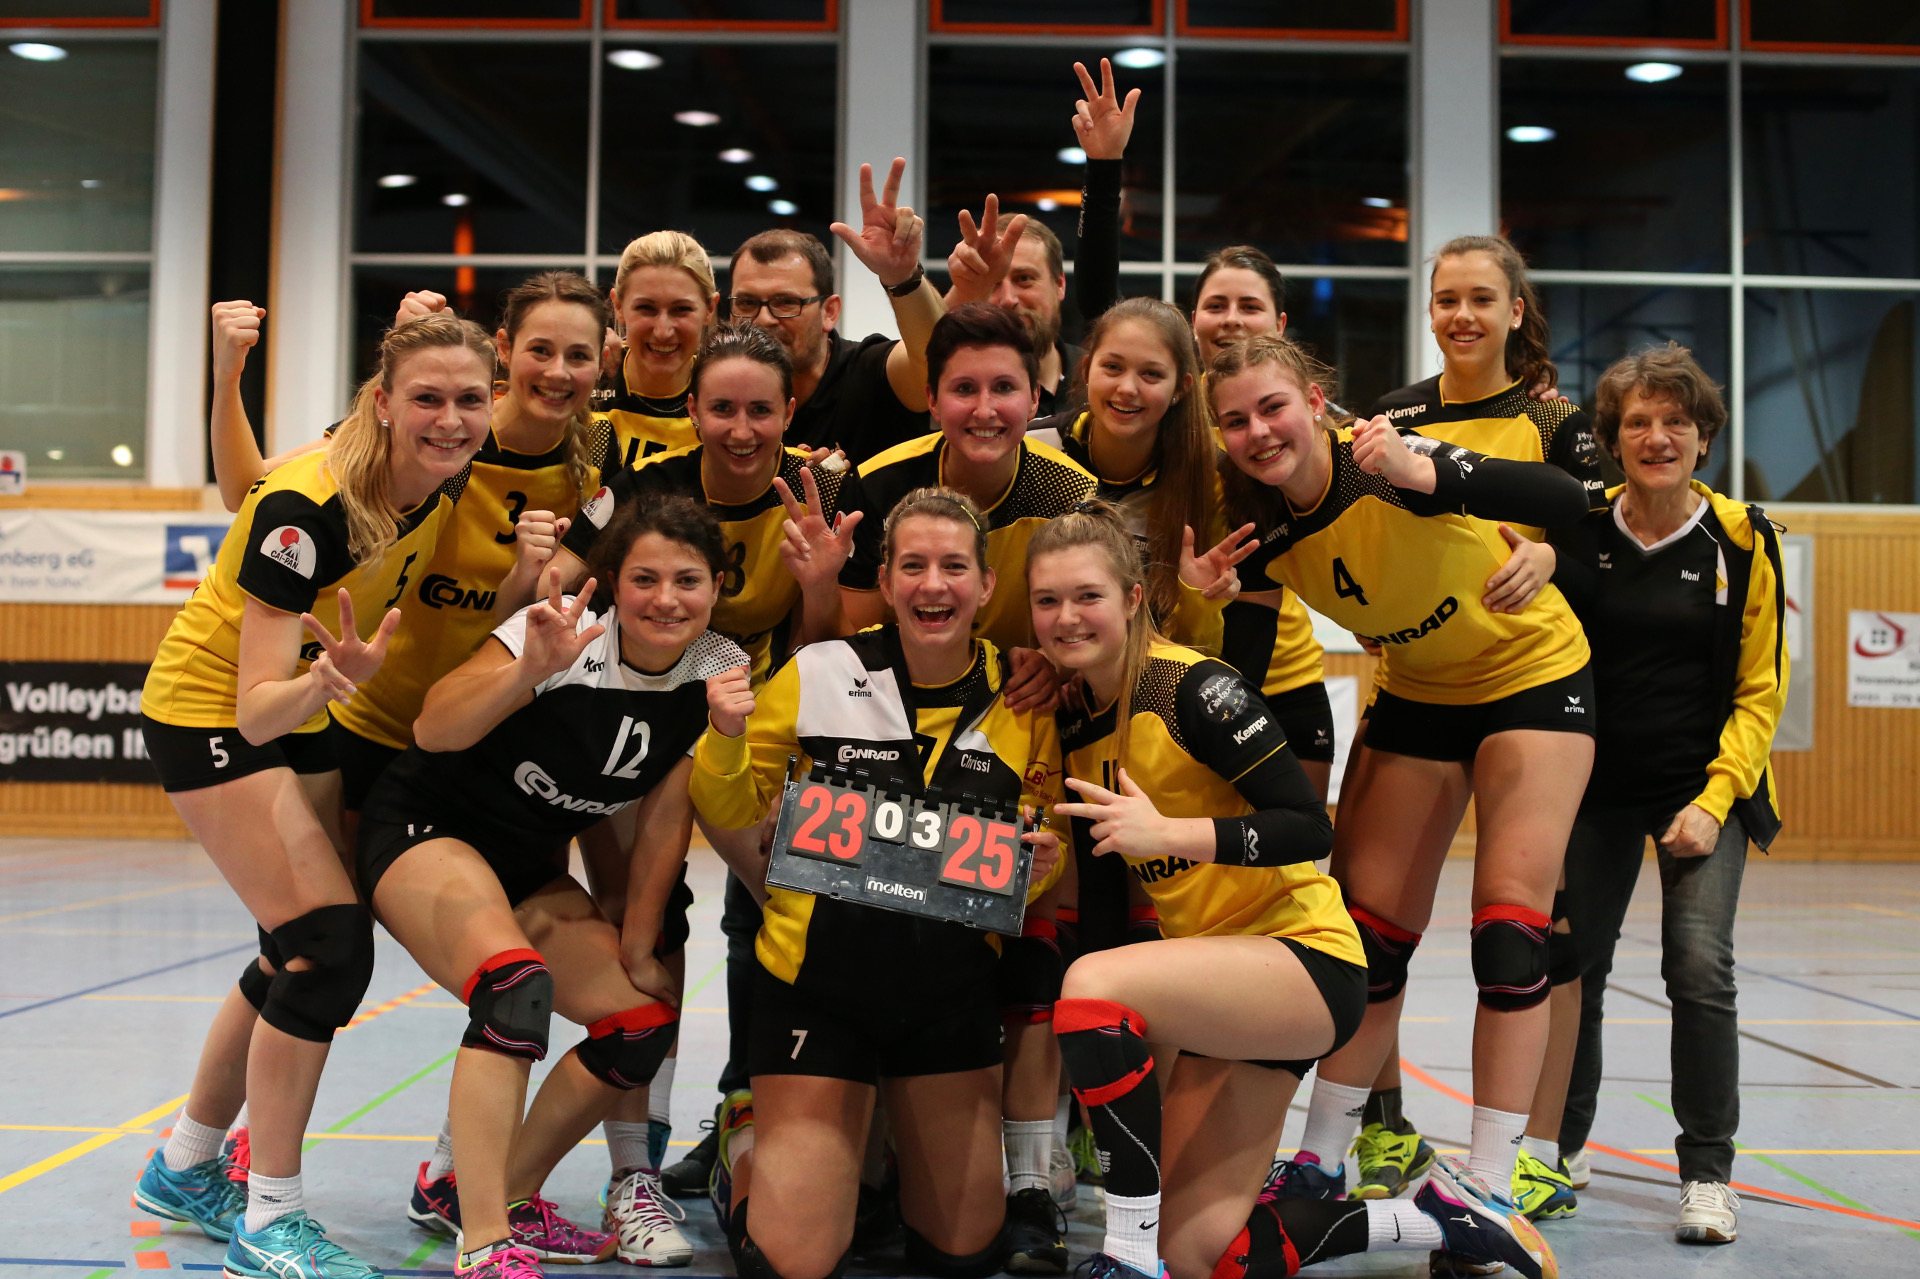 We congratulate the women's volleyball team